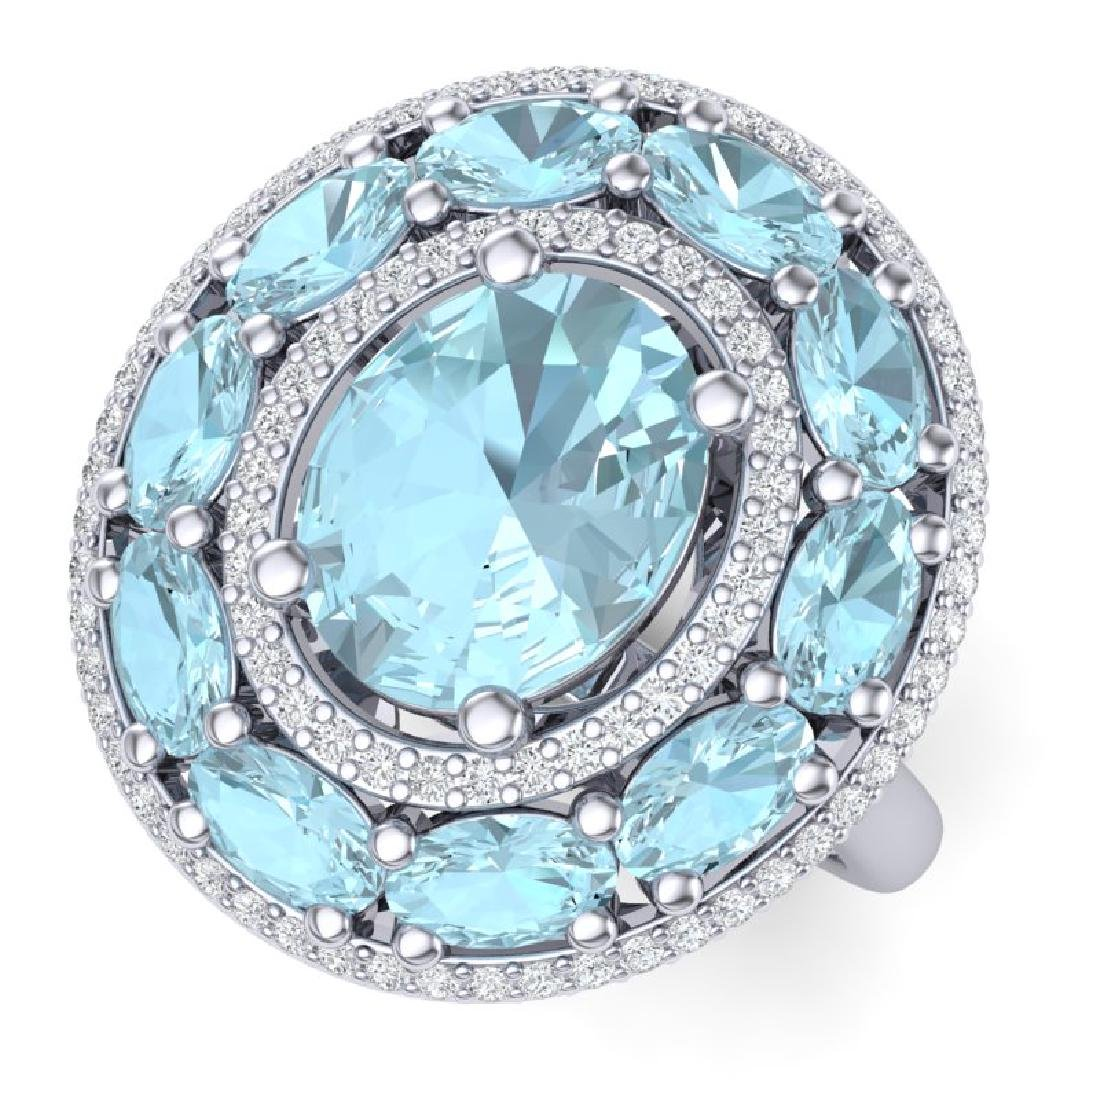 8.47 CTW Royalty Sky Topaz & VS Diamond Ring 18K White